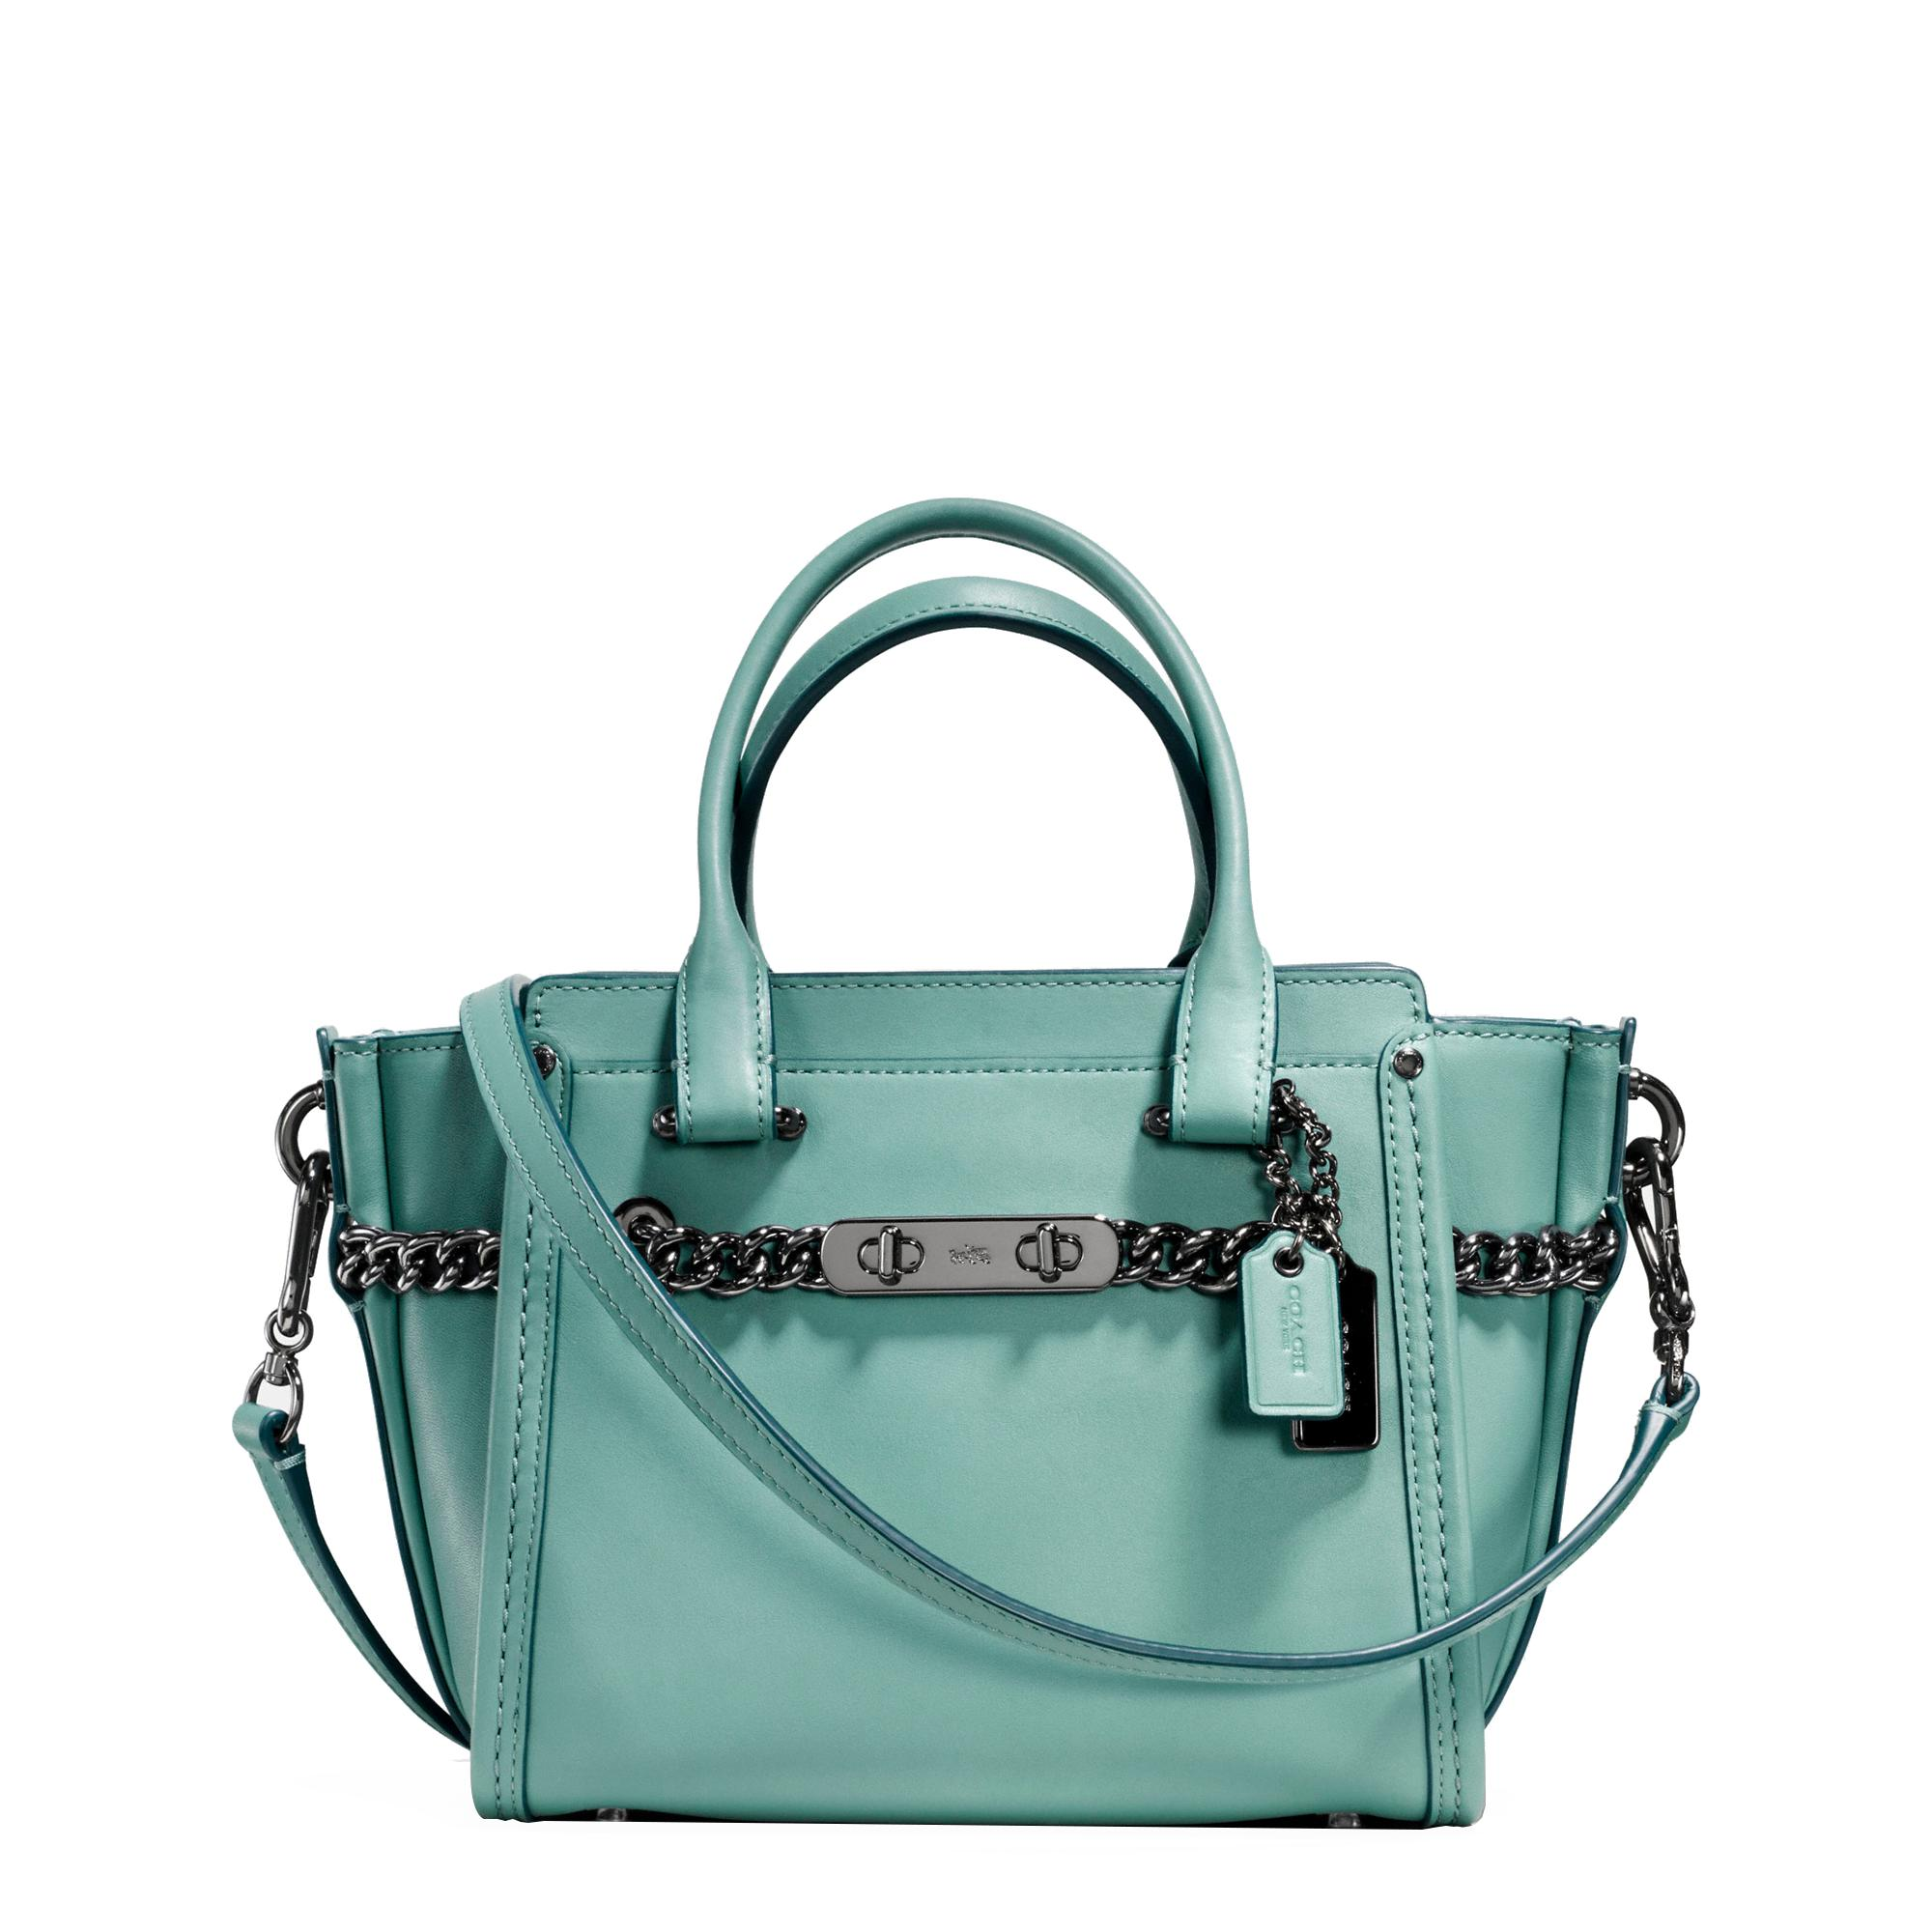 Lyst Coach Swagger 21 Bag In Blue 20 Pebbled Leather Peach Gallery